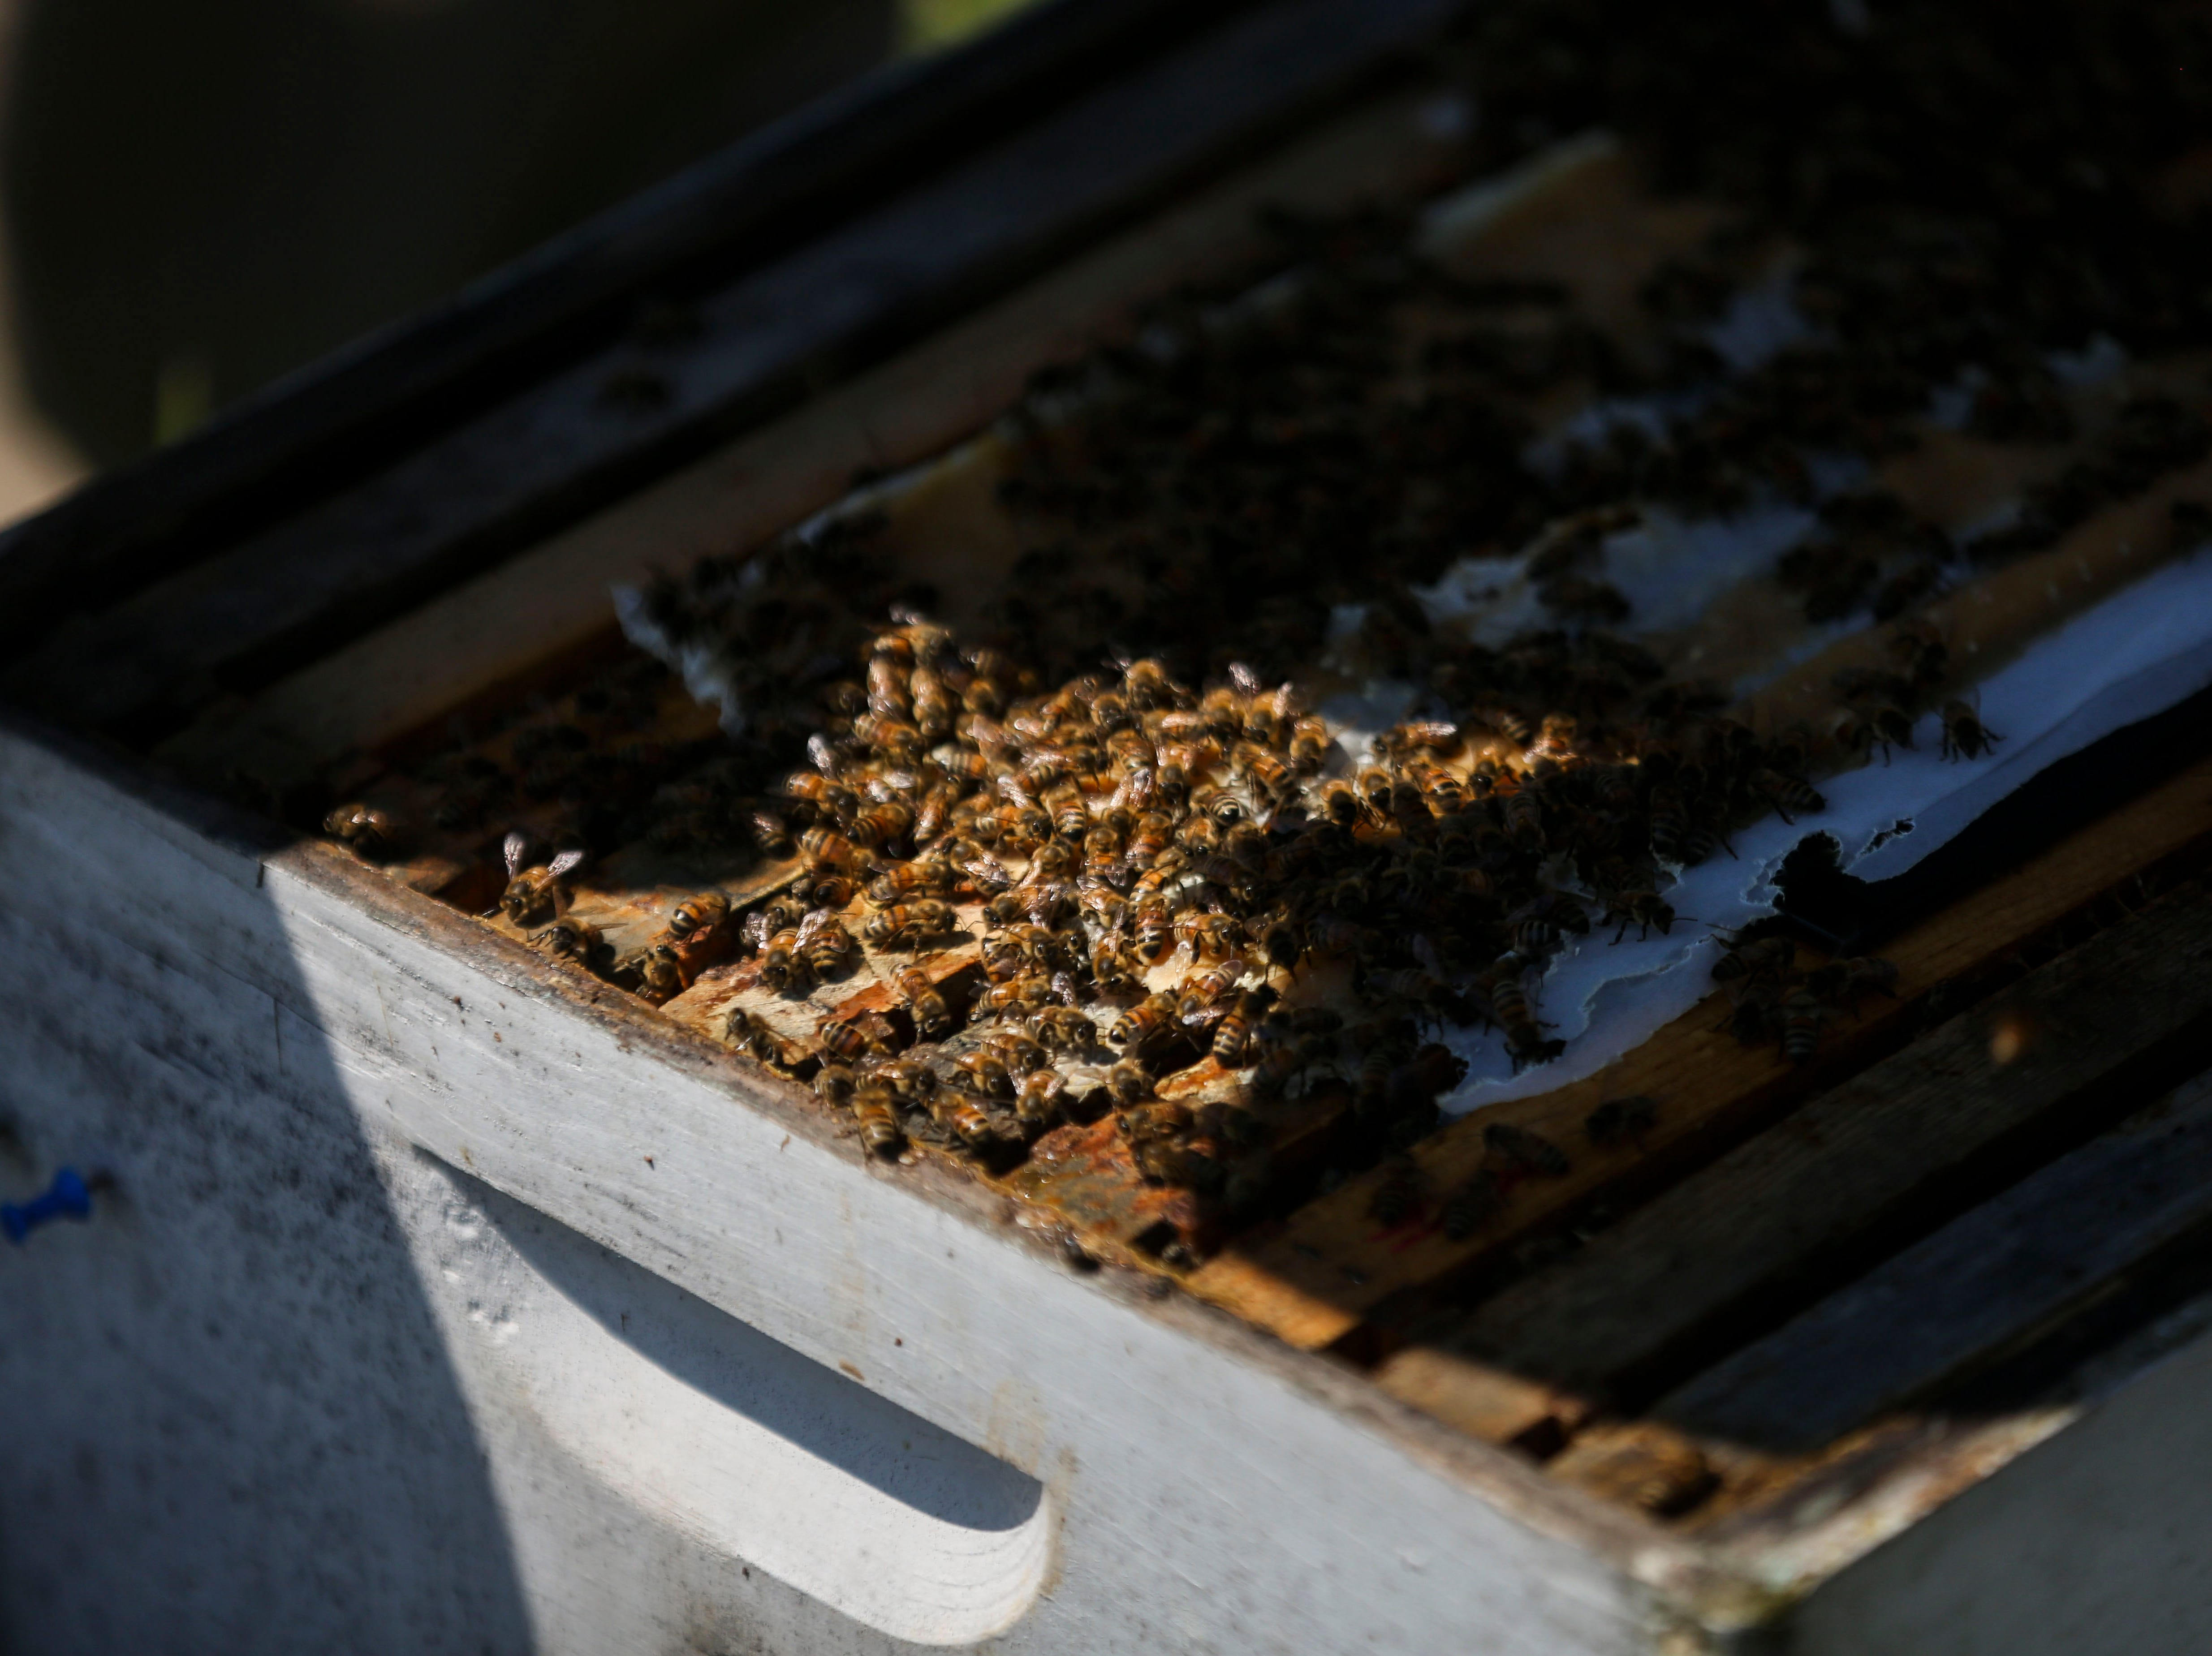 Bees feed on a winter pattie, packs of honey used to sustain bees during the winter months, in the Hosey Honey bee yard in Midway, Ky. on Wednesday, April 3, 2019. HHosey Honey is a small family run honey company, their Hosey's Queen's Triple Crown honey is used in the sweetener in the $1,000 Woodford Reserve Kentucky Derby mint julep.